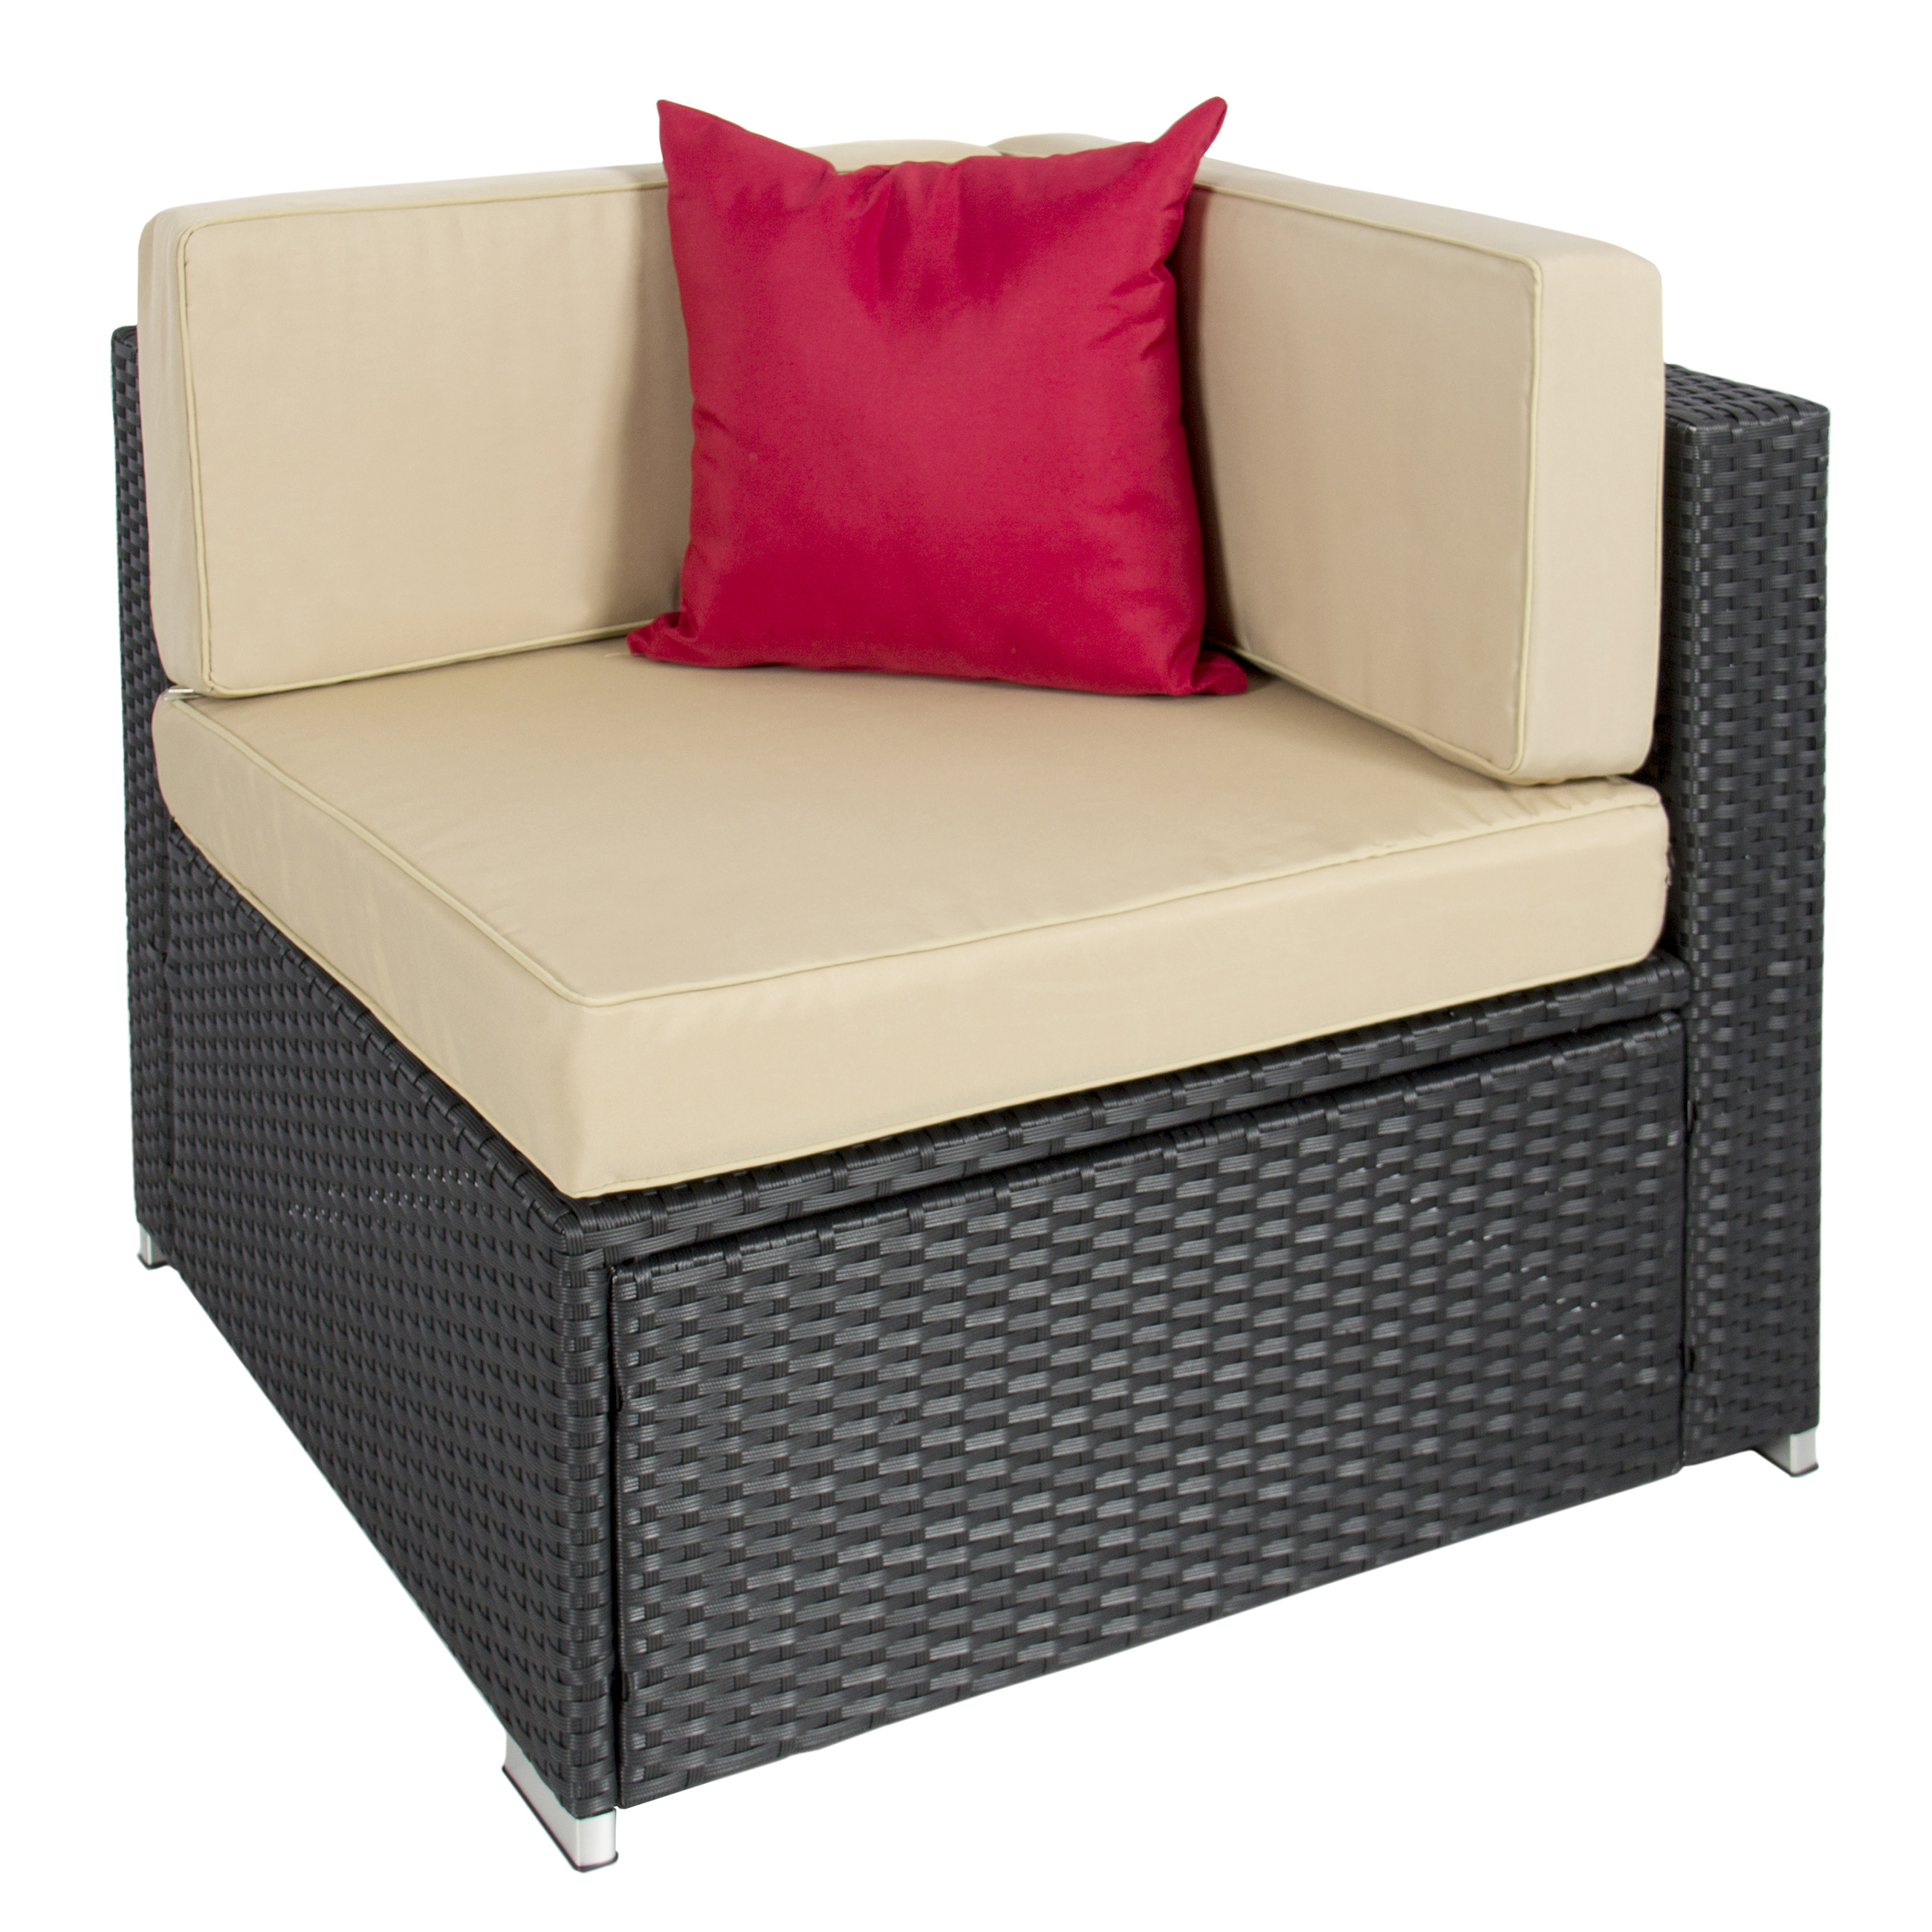 best choice products 7pc outdoor patio garden wicker furniture rattan sofa set image 5 of 7